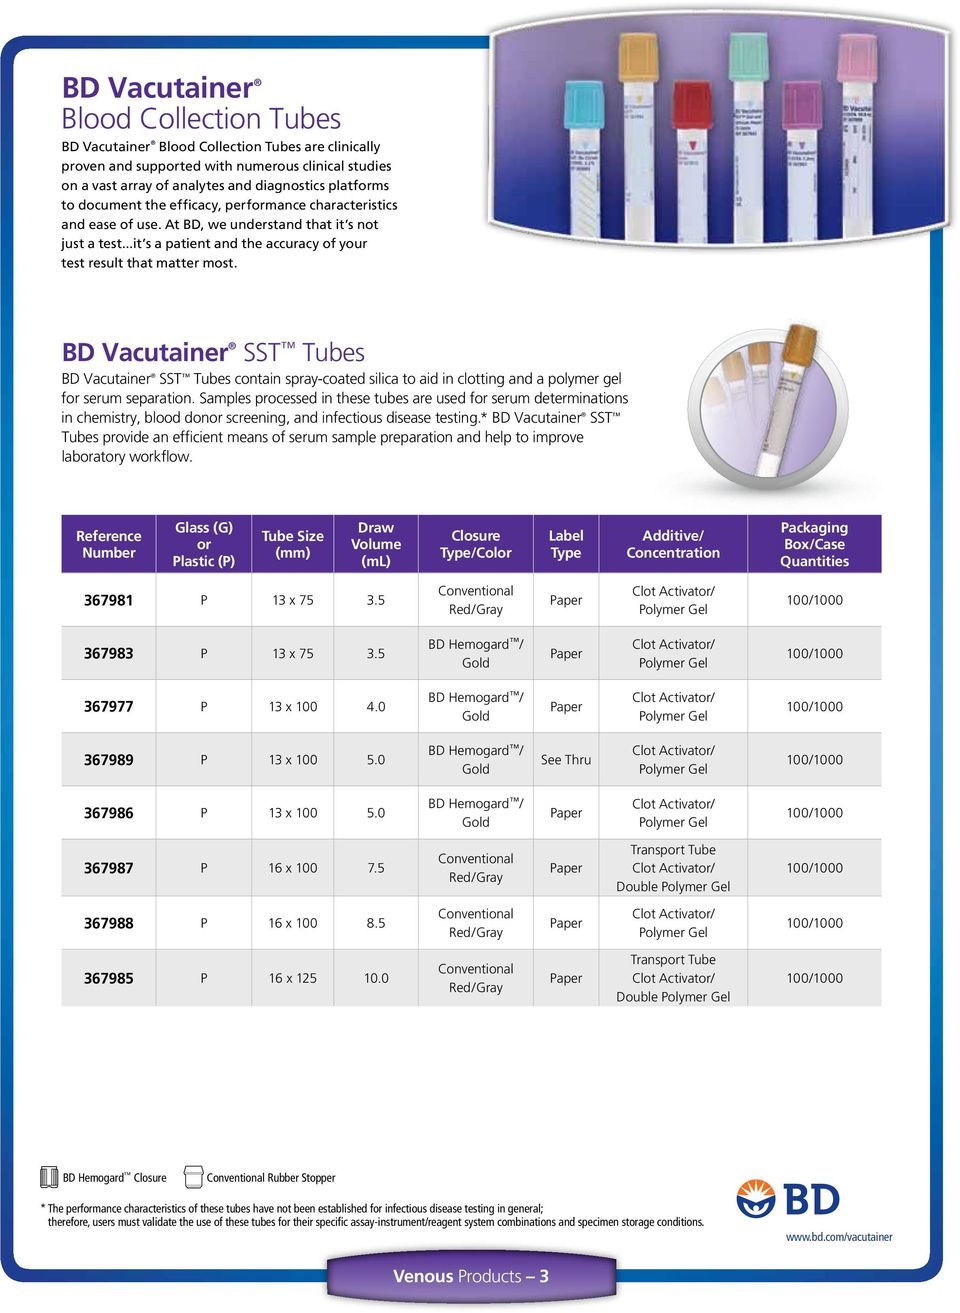 BD Vacutainer SST Tubes BD Vacutainer SST Tubes contain spray-coated silica to aid in clotting and a polymer gel for serum separation.